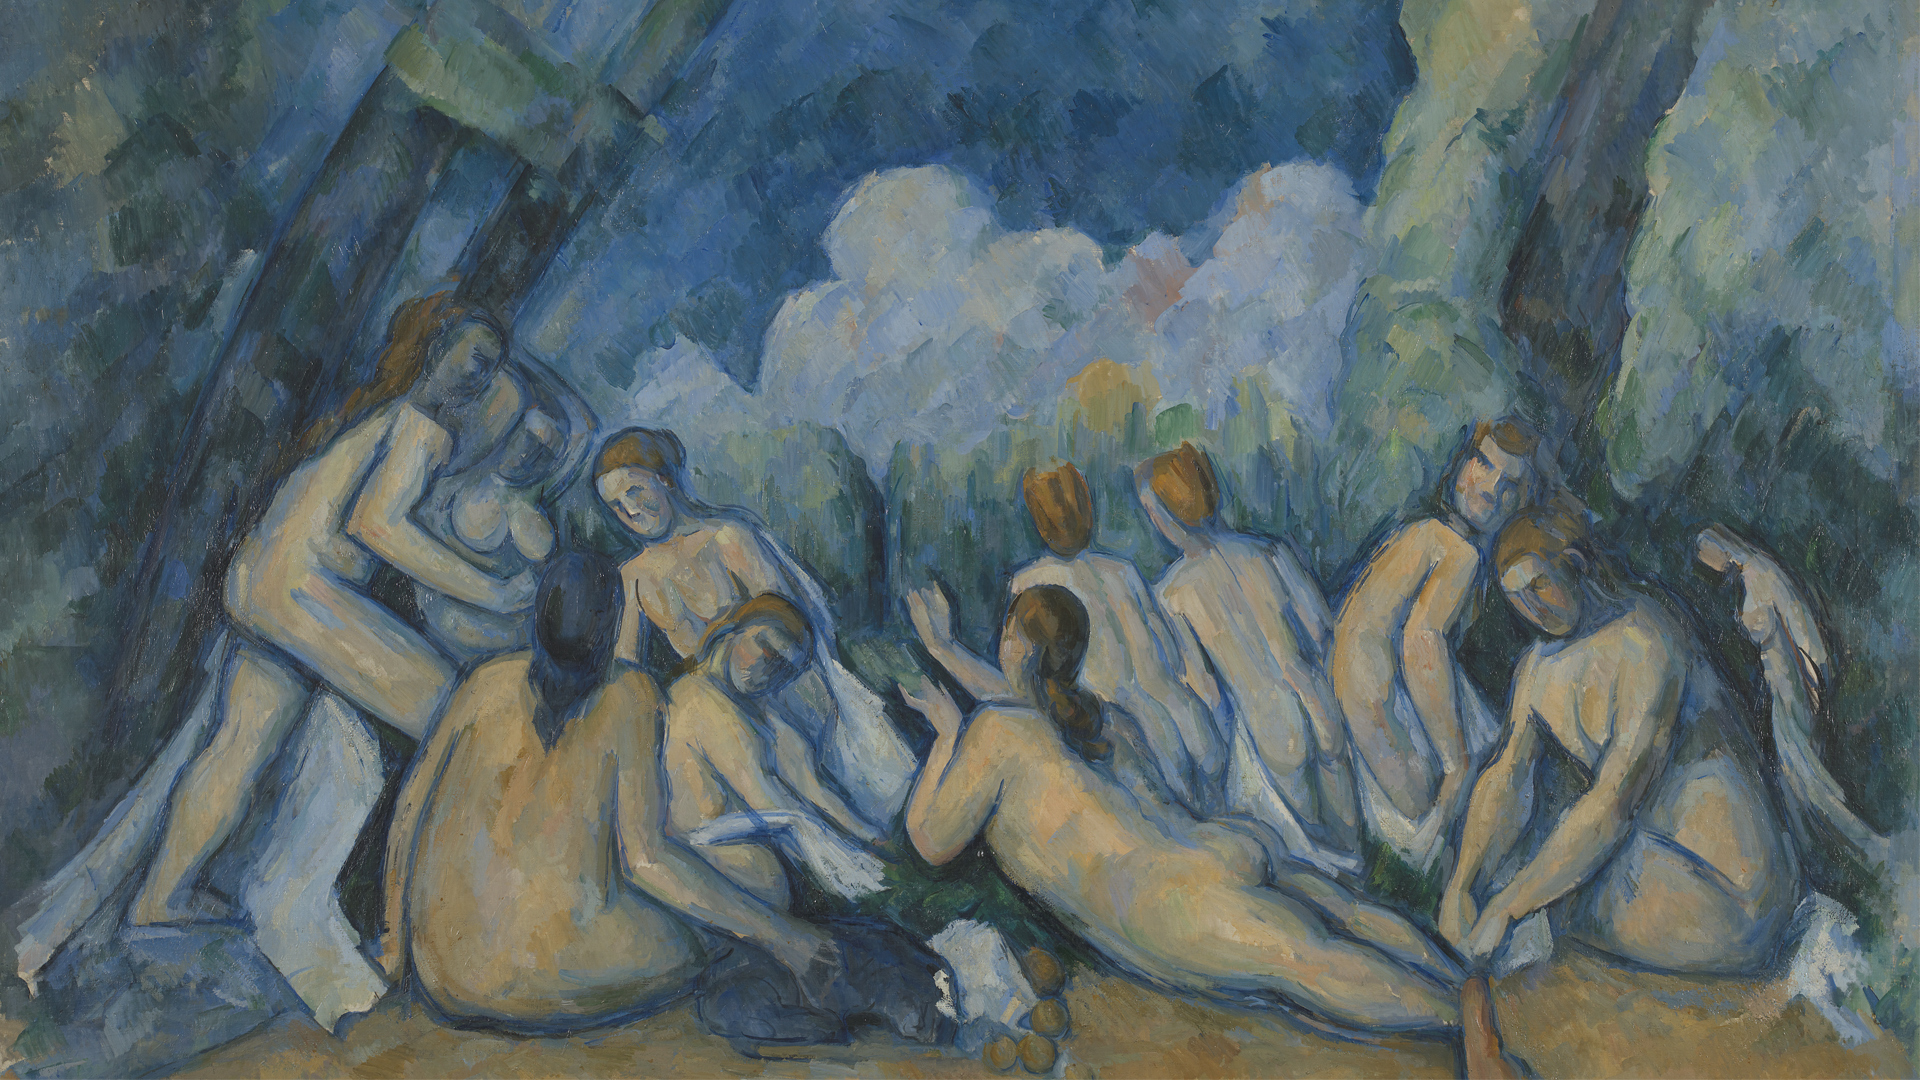 NG6359 - Paul Cézanne. Bathers (Les Grandes Baigneuses). About 1894-1905. © The National Gallery, London